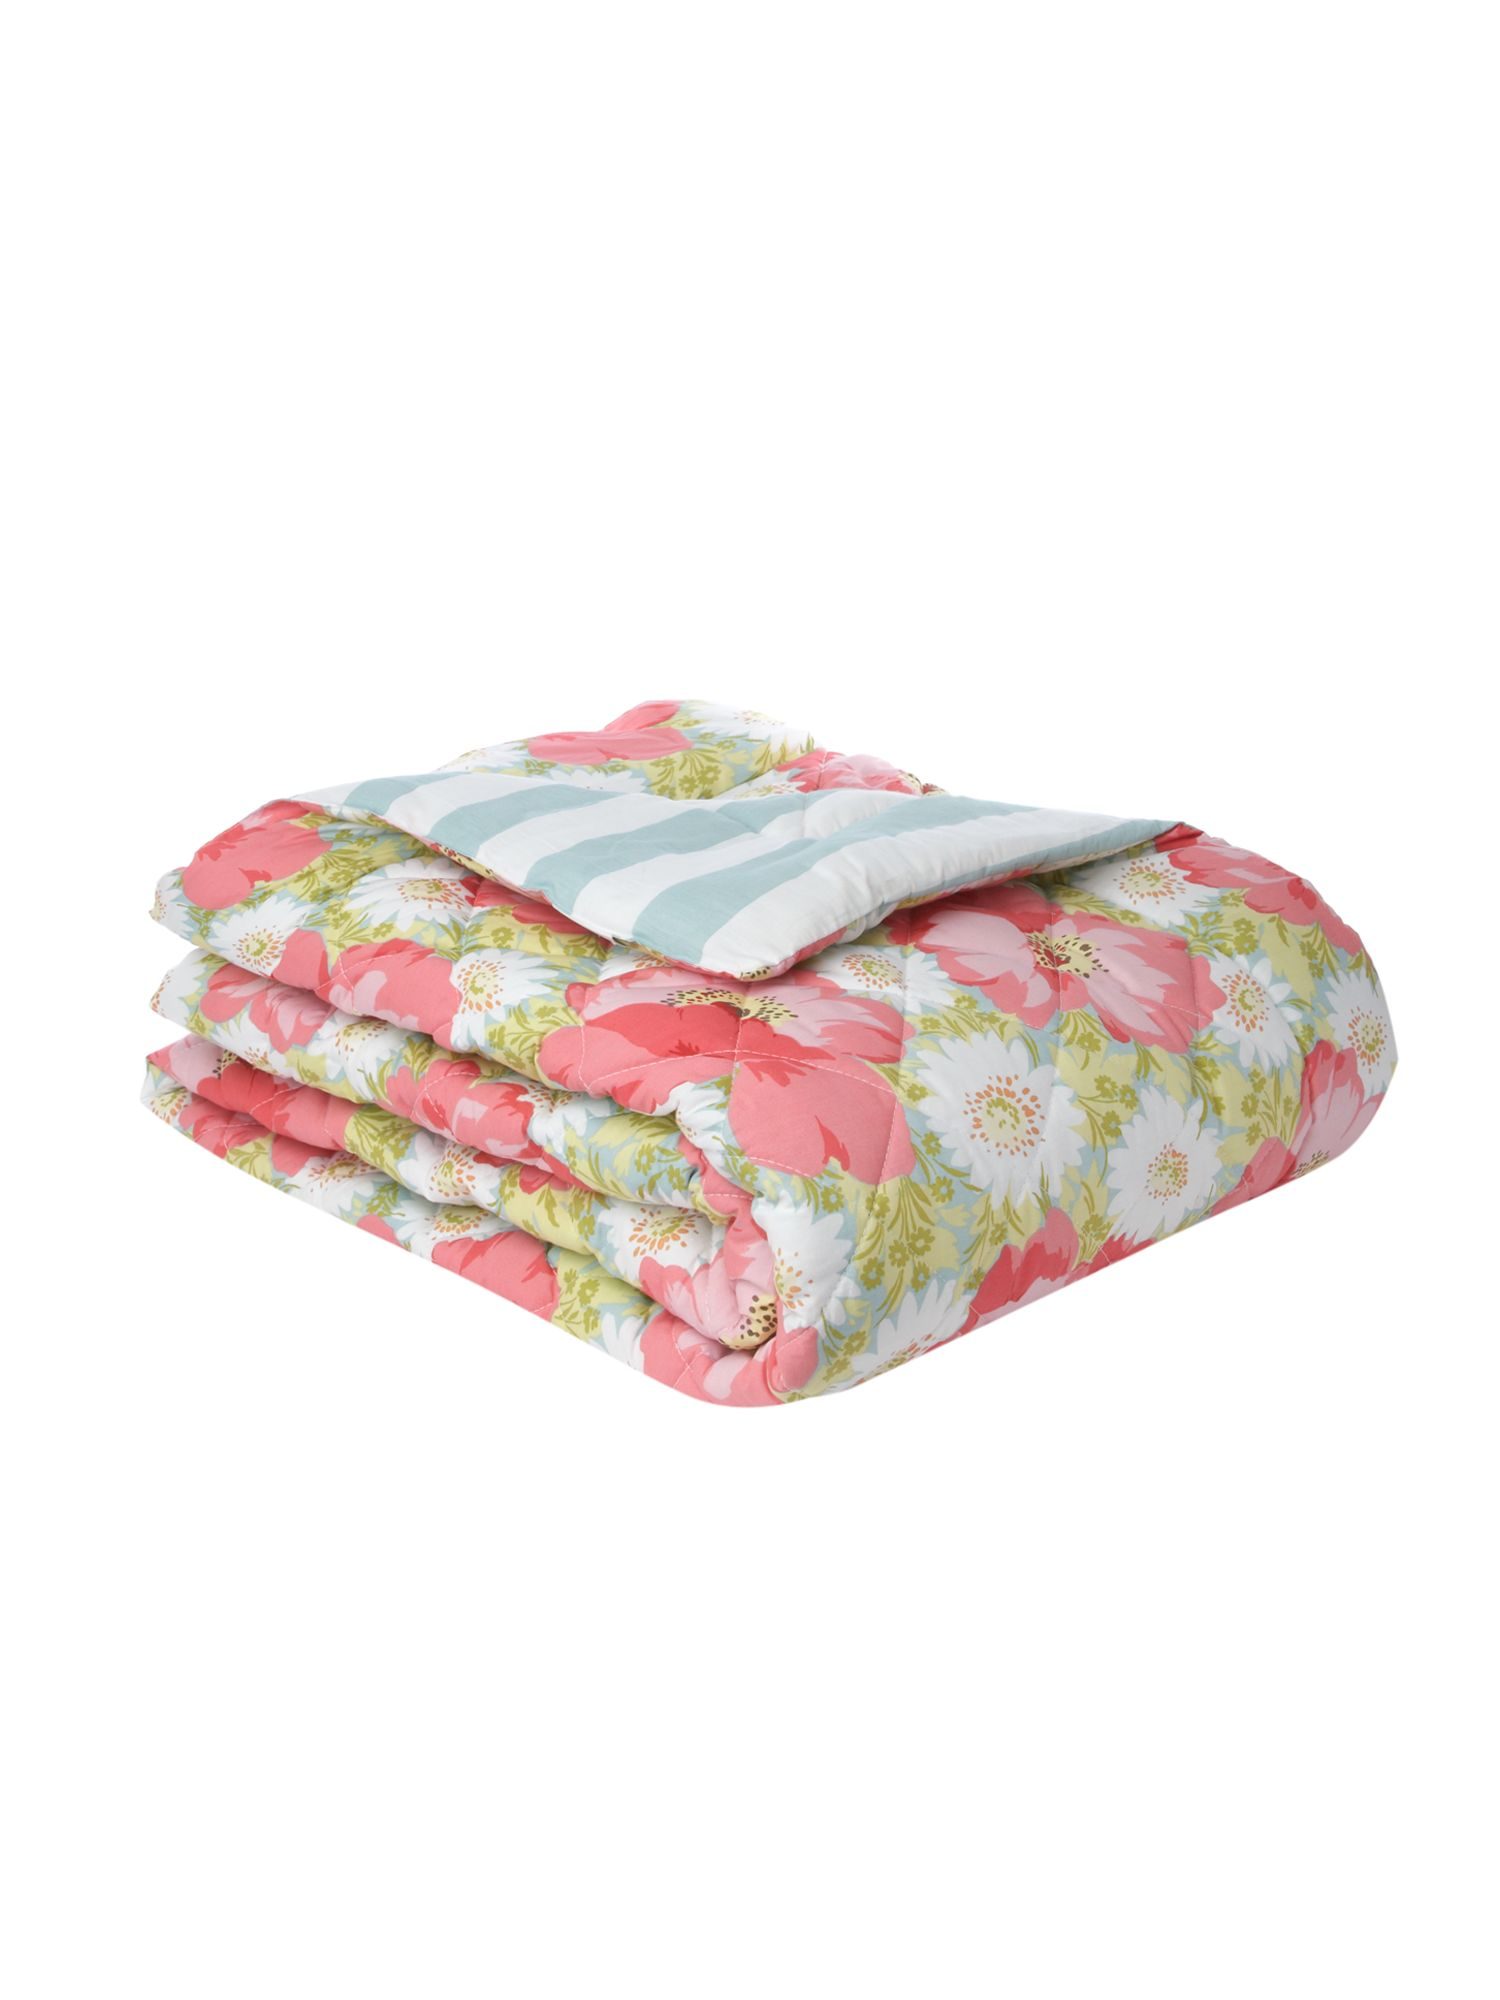 Matilda bed throw